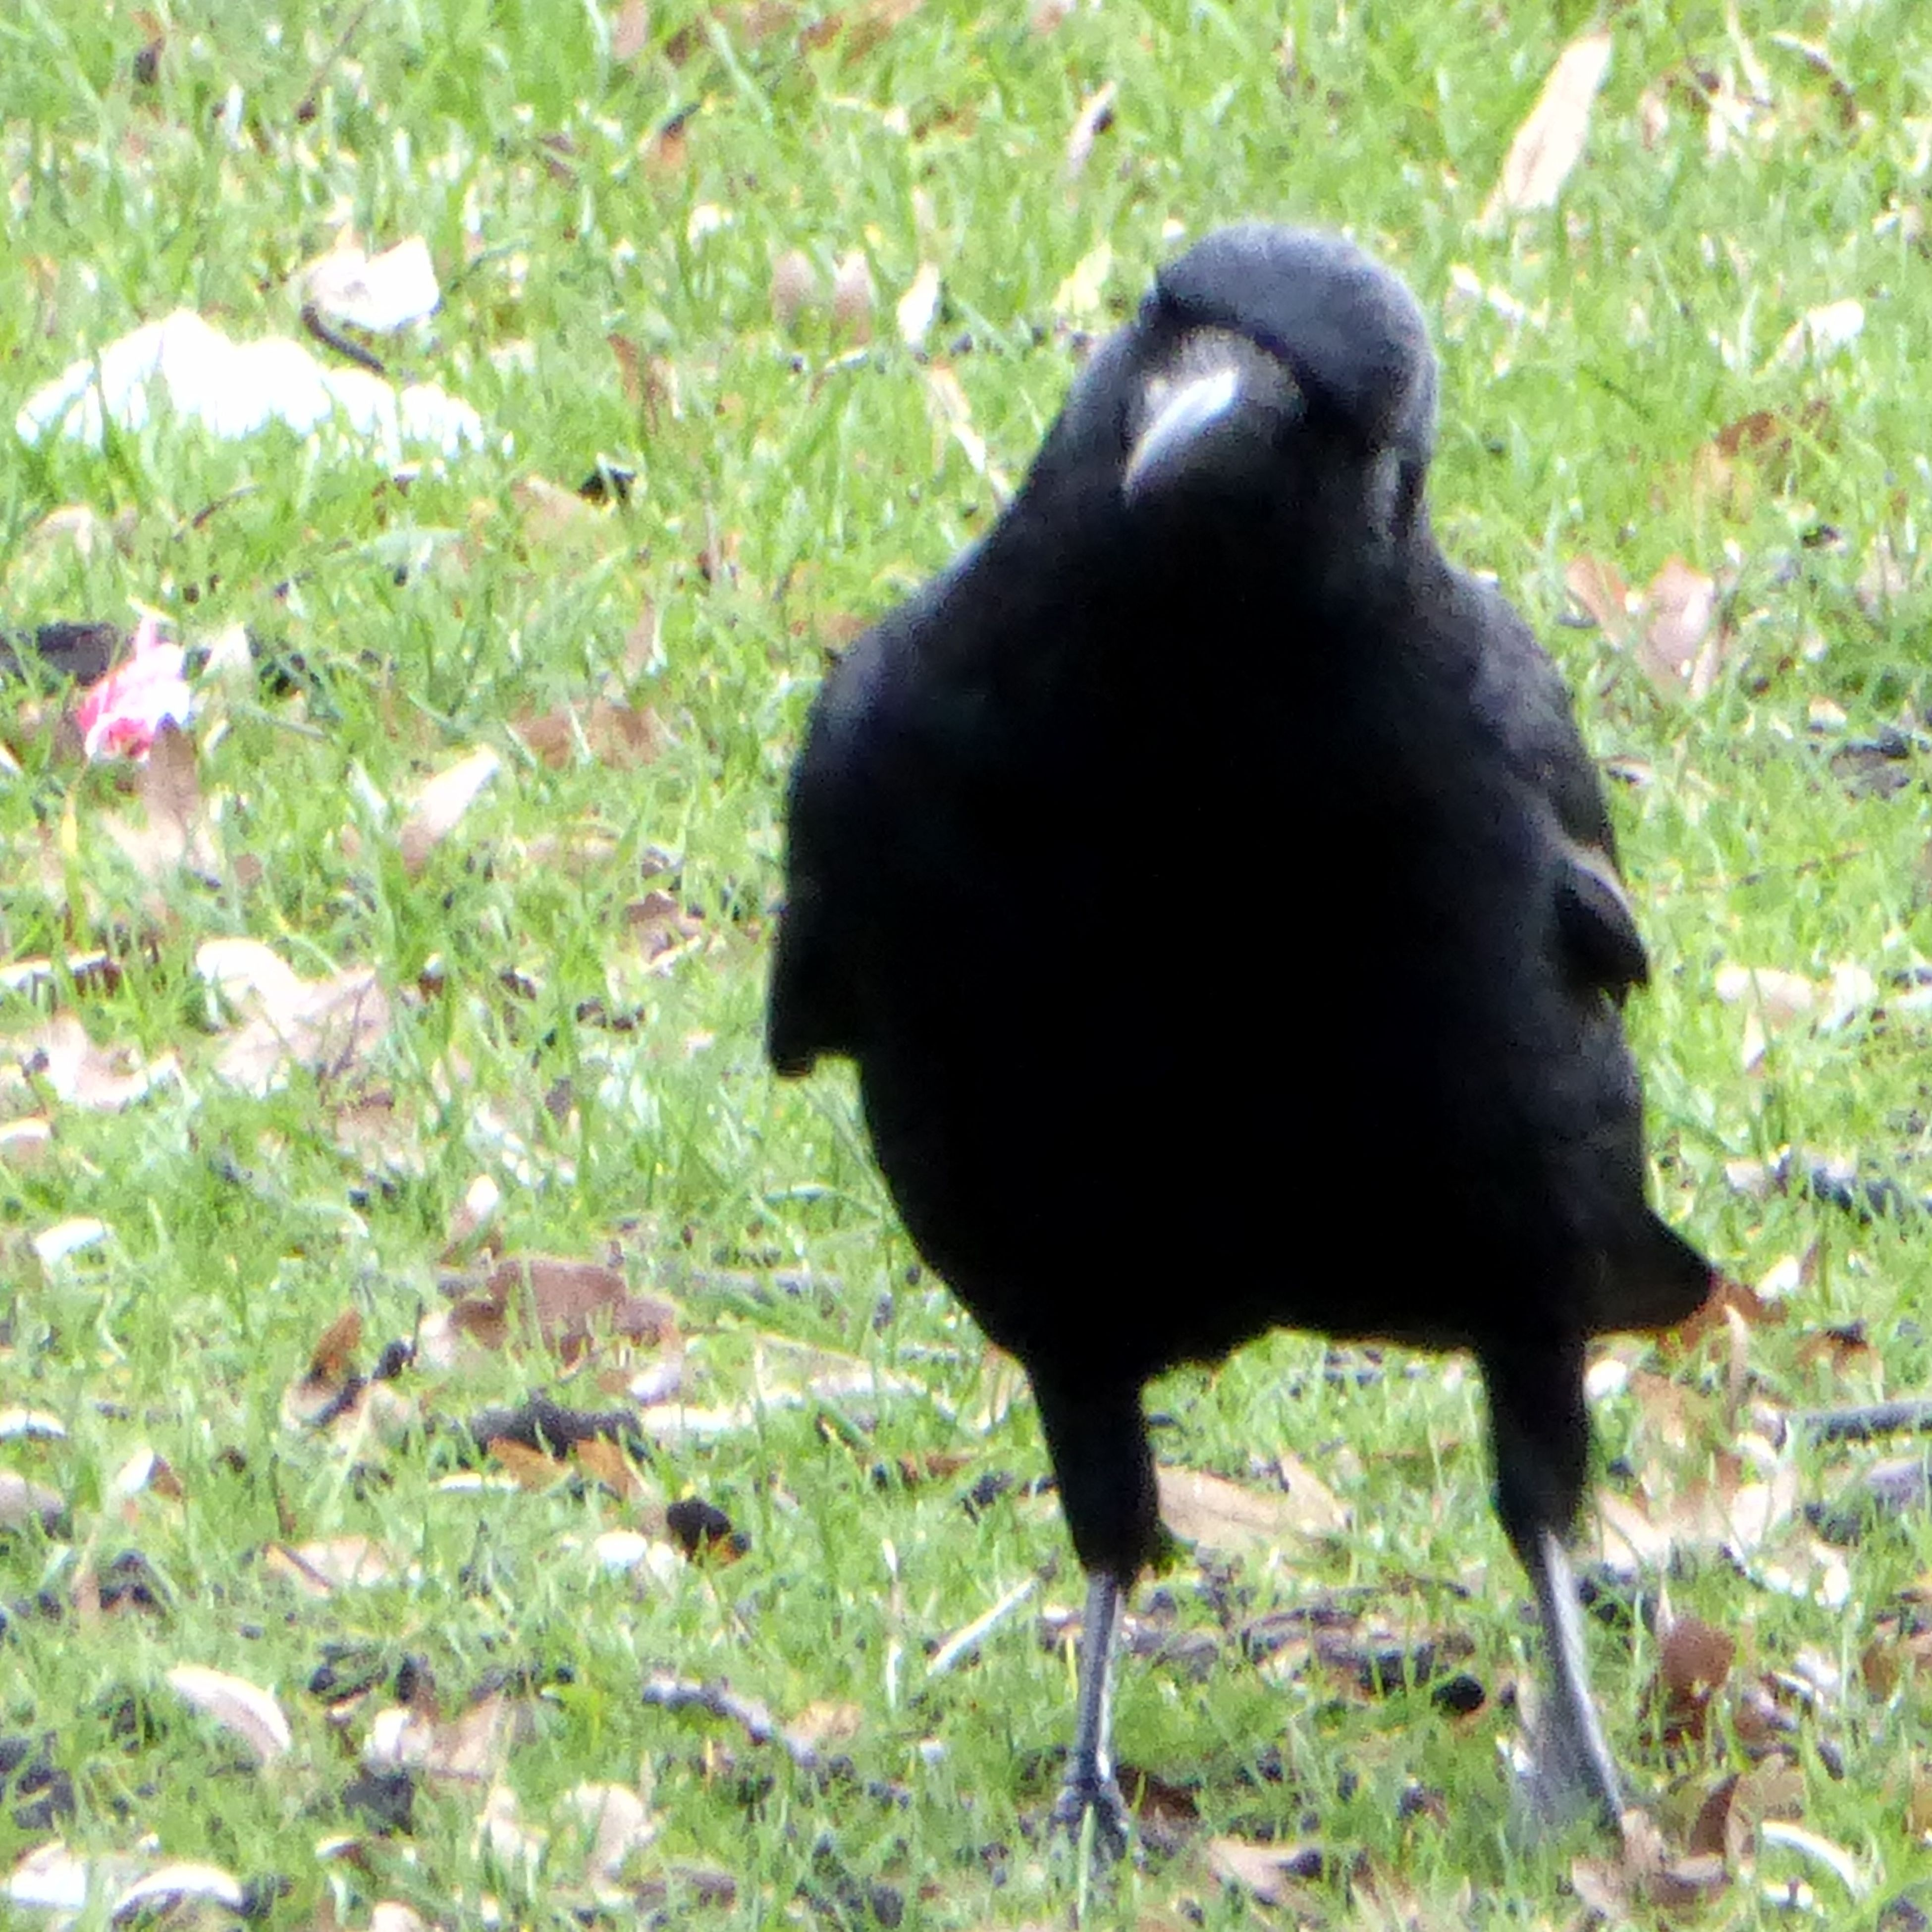 animal themes, grass, one animal, bird, animals in the wild, field, nature, black color, day, outdoors, no people, mammal